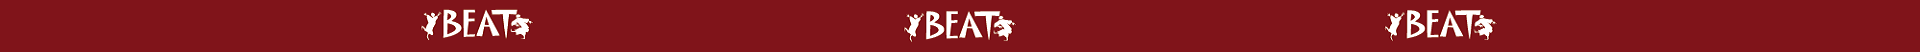 Top Banner BEAT Logo